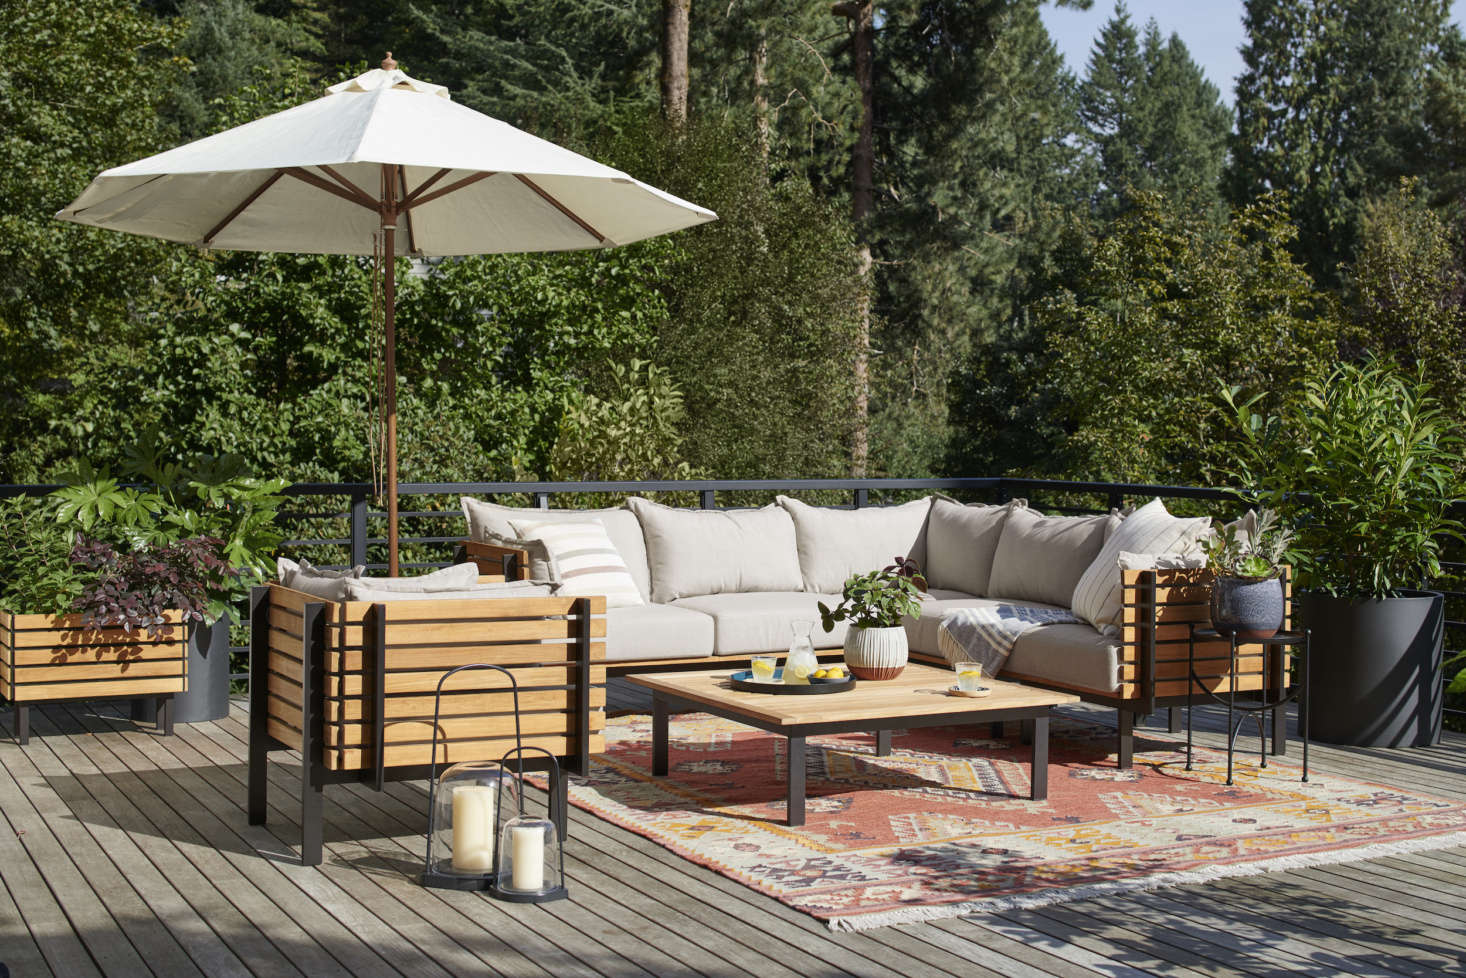 Outdoor furniture from the Jasper collection—like the Jasper Three-Piece Teak Sectional Sofa ($4,997) and Jasper Teak Arm Chair ($src=